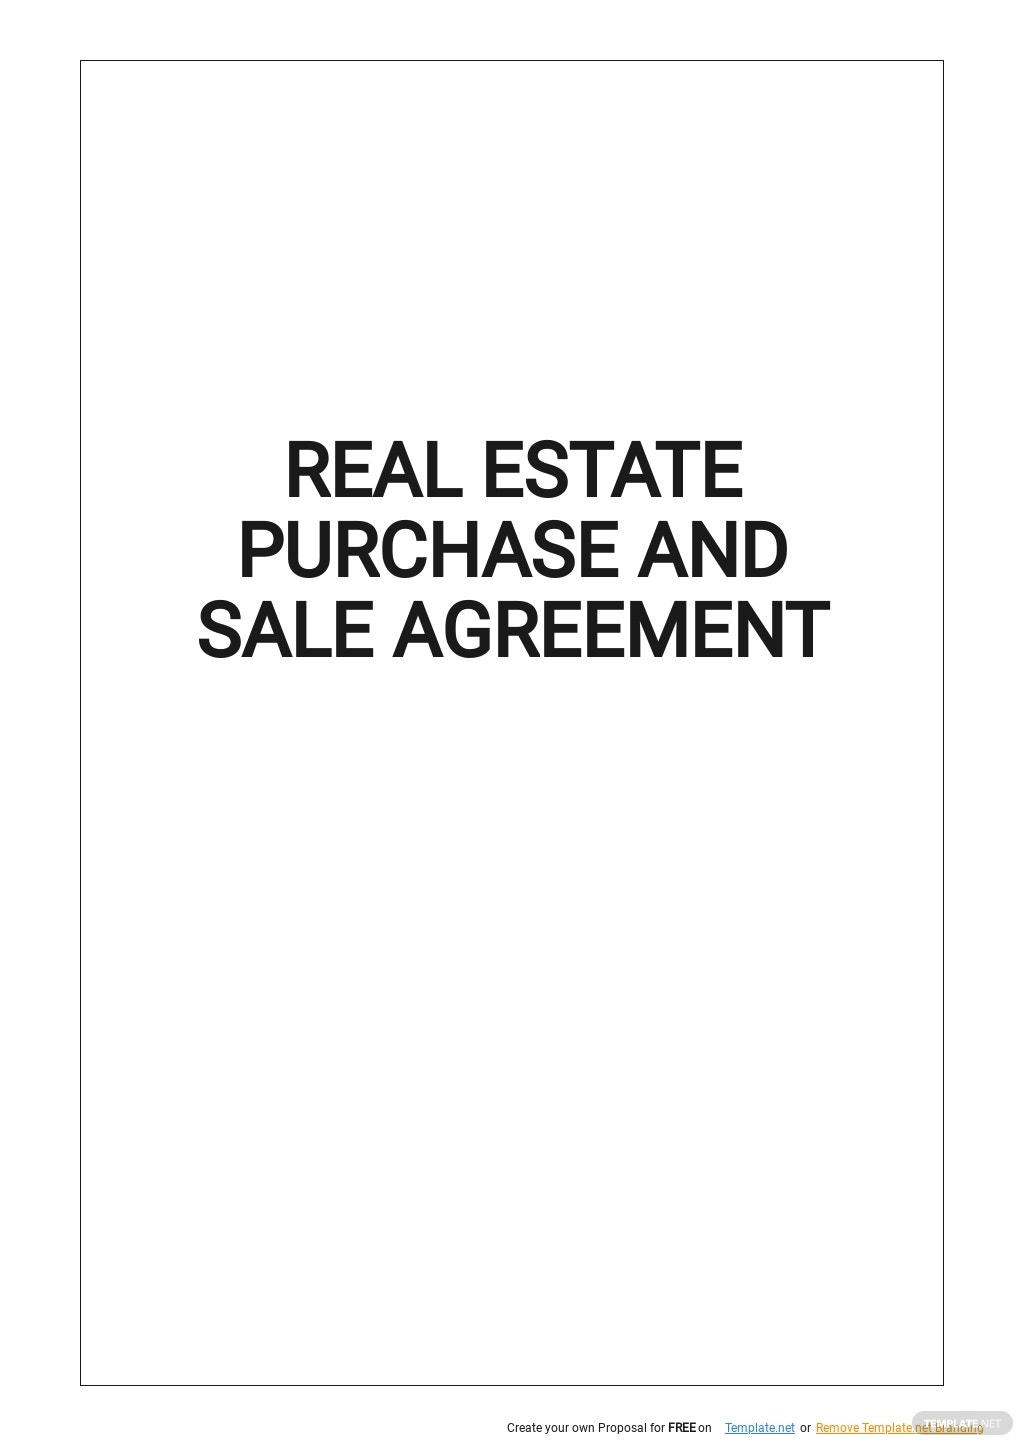 Real Estate Purchase and Sale Agreement Template.jpe